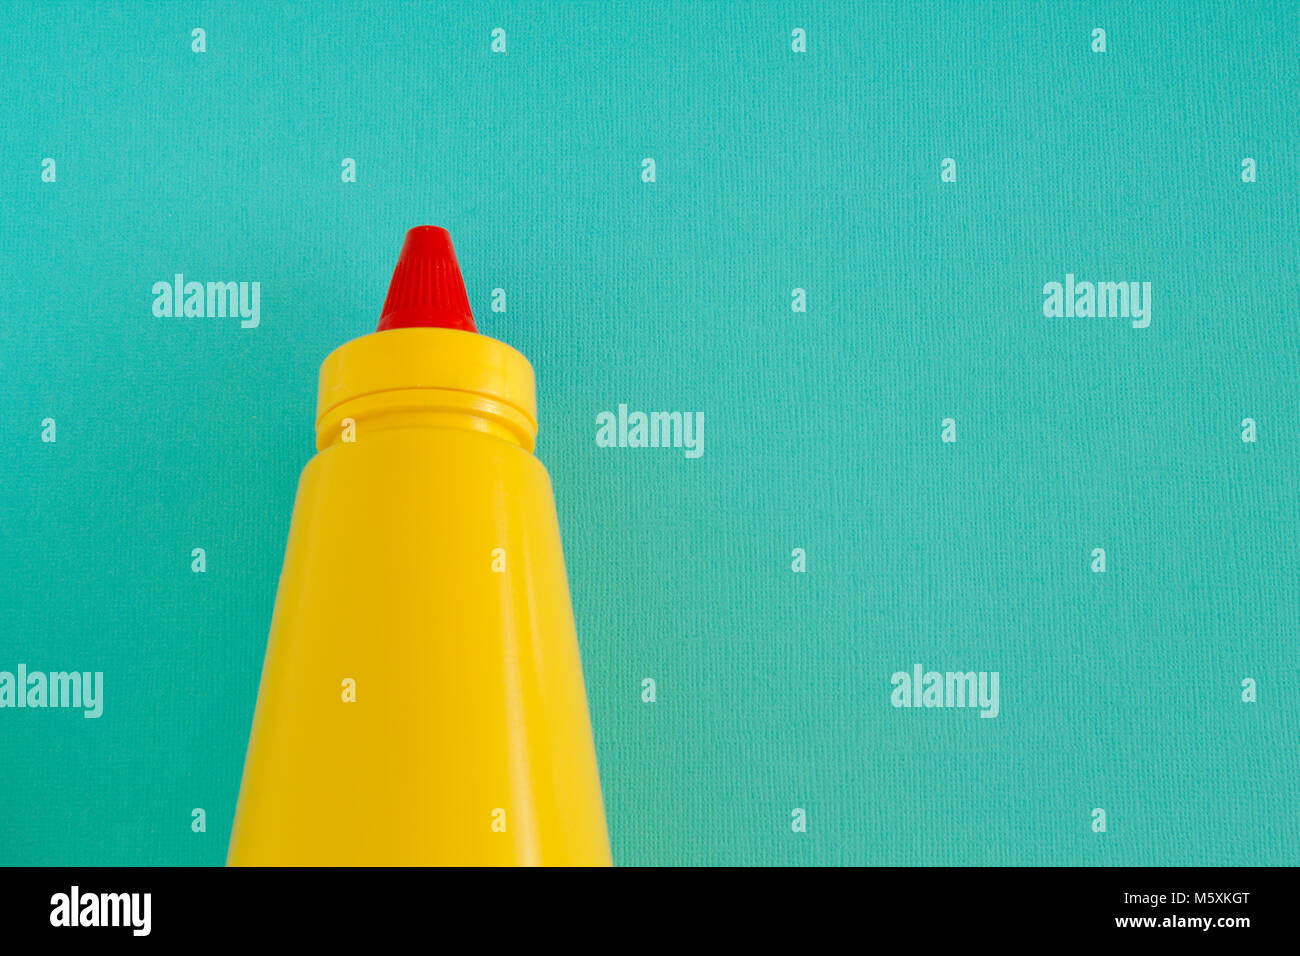 A bright yellow squirting mustard or condiment bottle with bright red twisting lid. Left aligned on an aqua background. - Stock Image